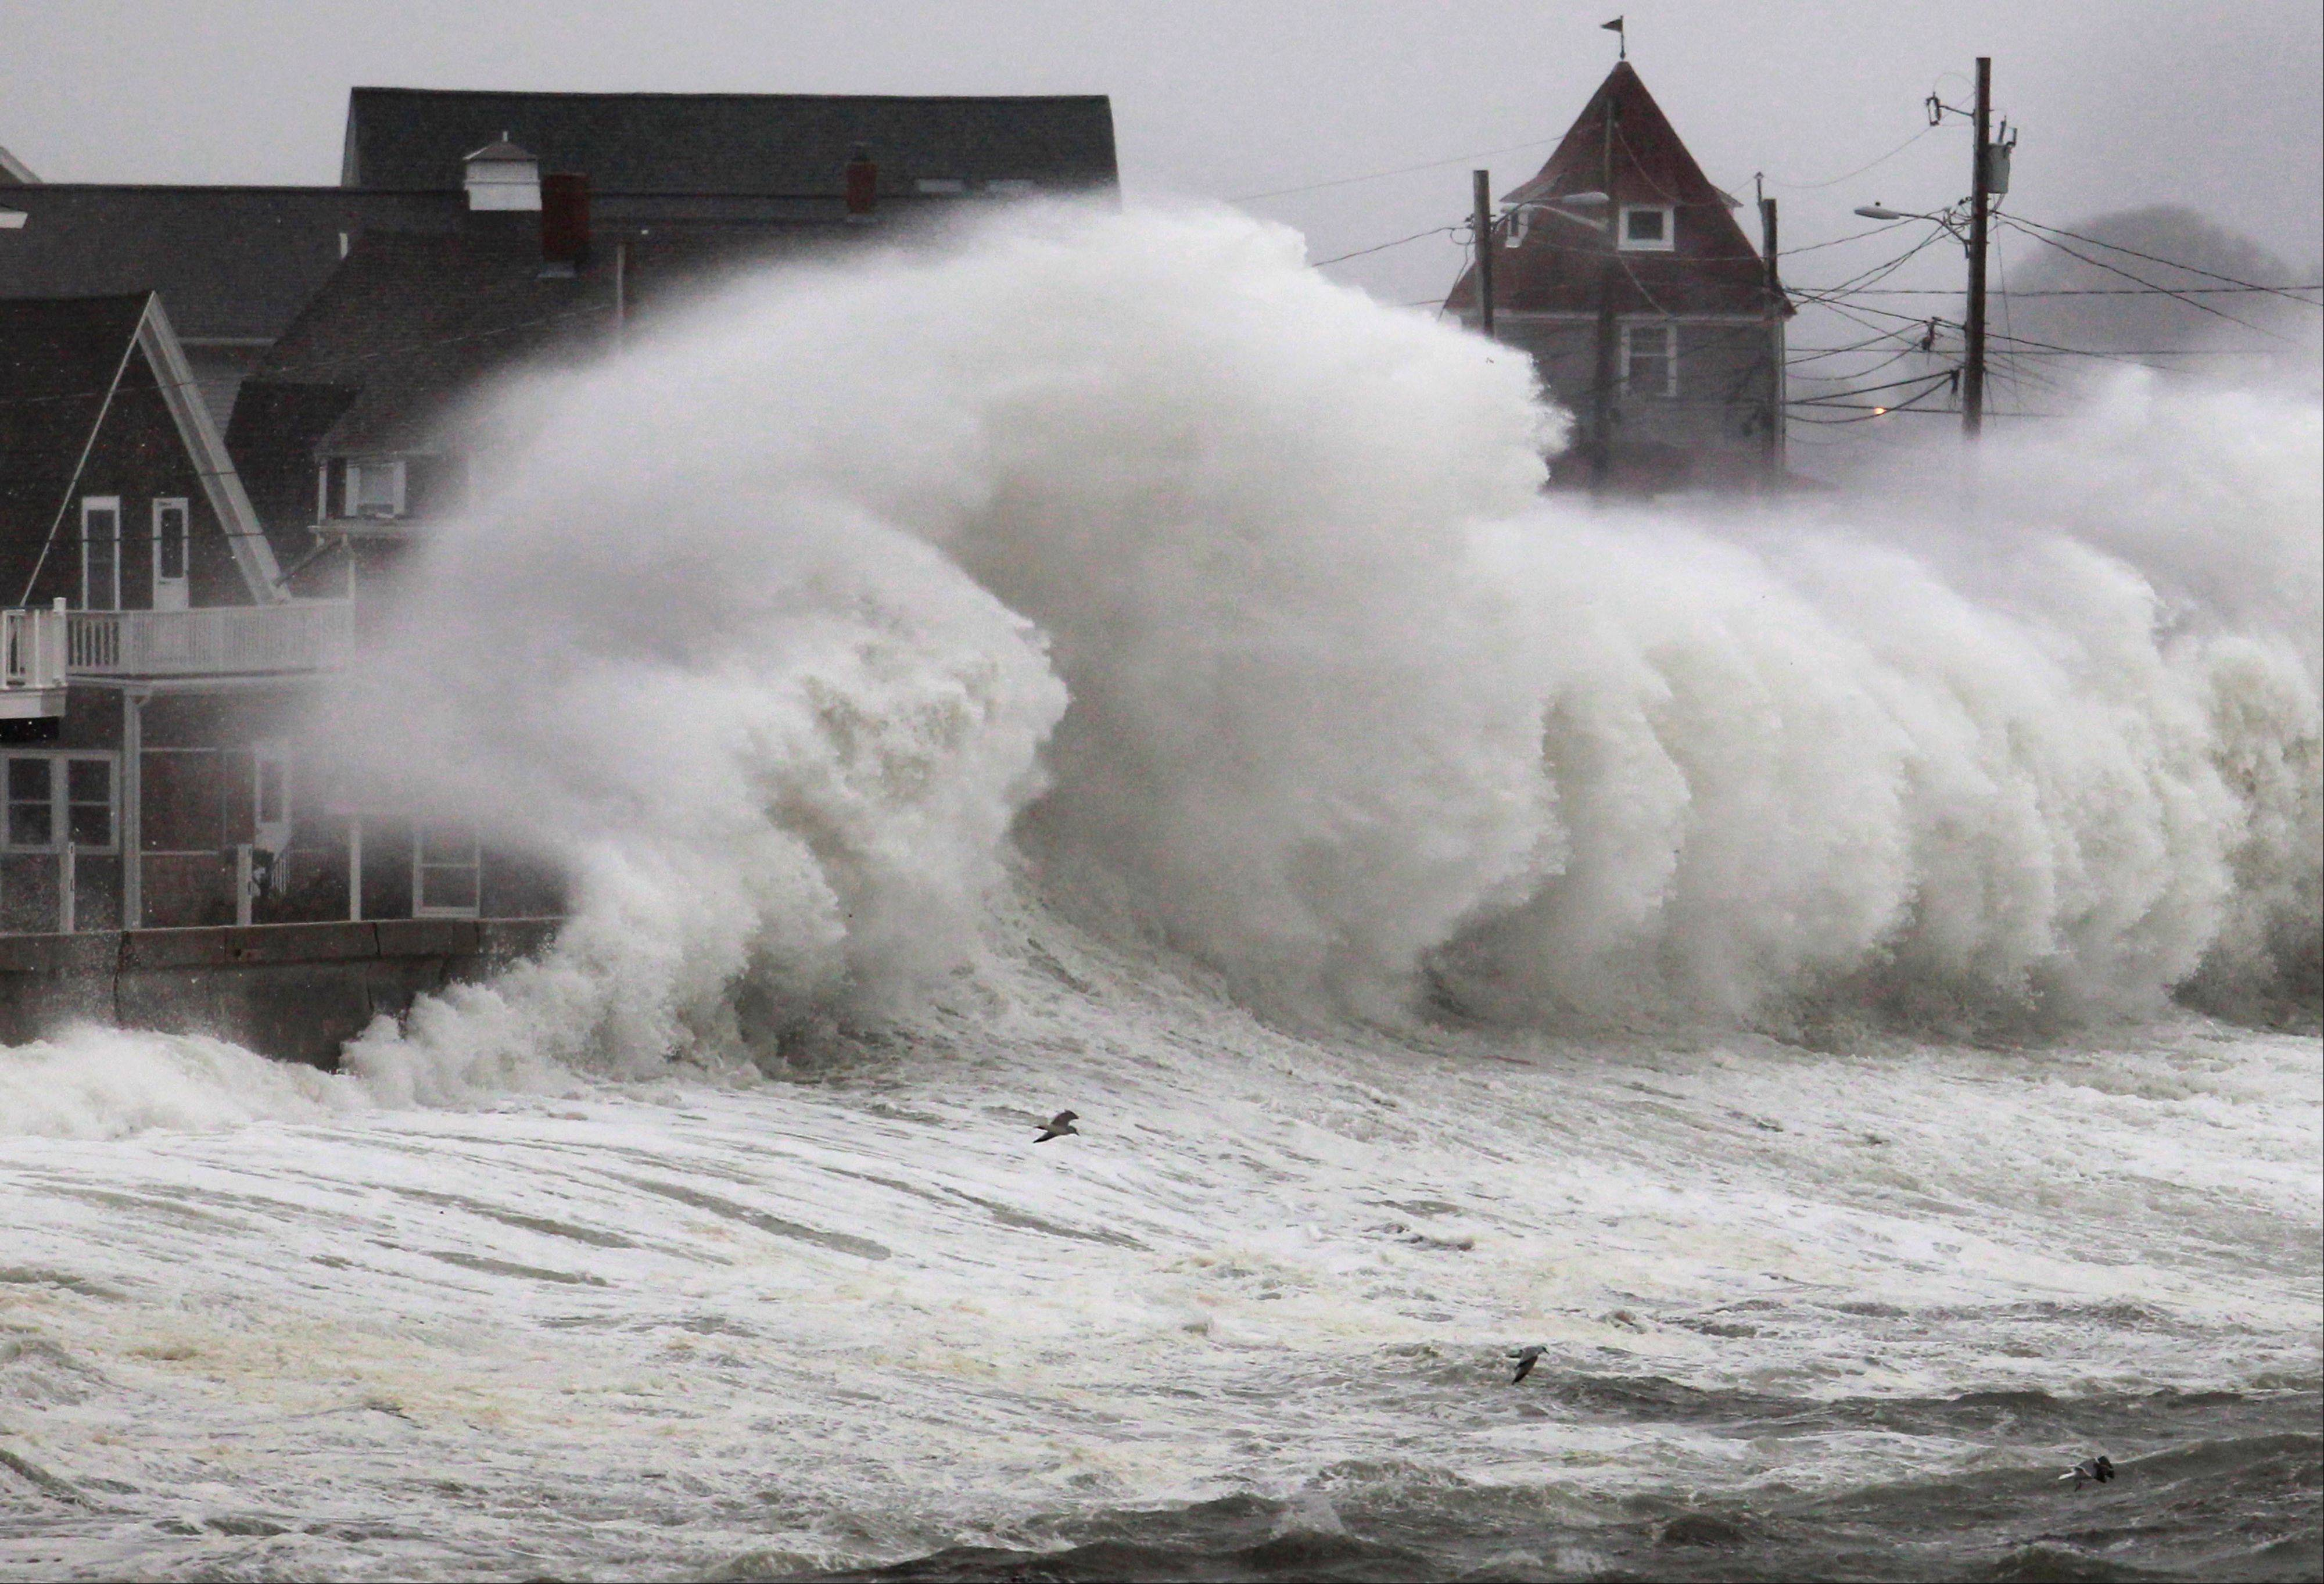 Waves crash into a seawall and buildings along the coast in Hull, Mass., Wednesday. A high-wind warning is in effect in the state until Wednesday night, with gusts of up to 60 mph expected in some costal areas, and 50 mph gusts expected for Boston and western Massachusetts.